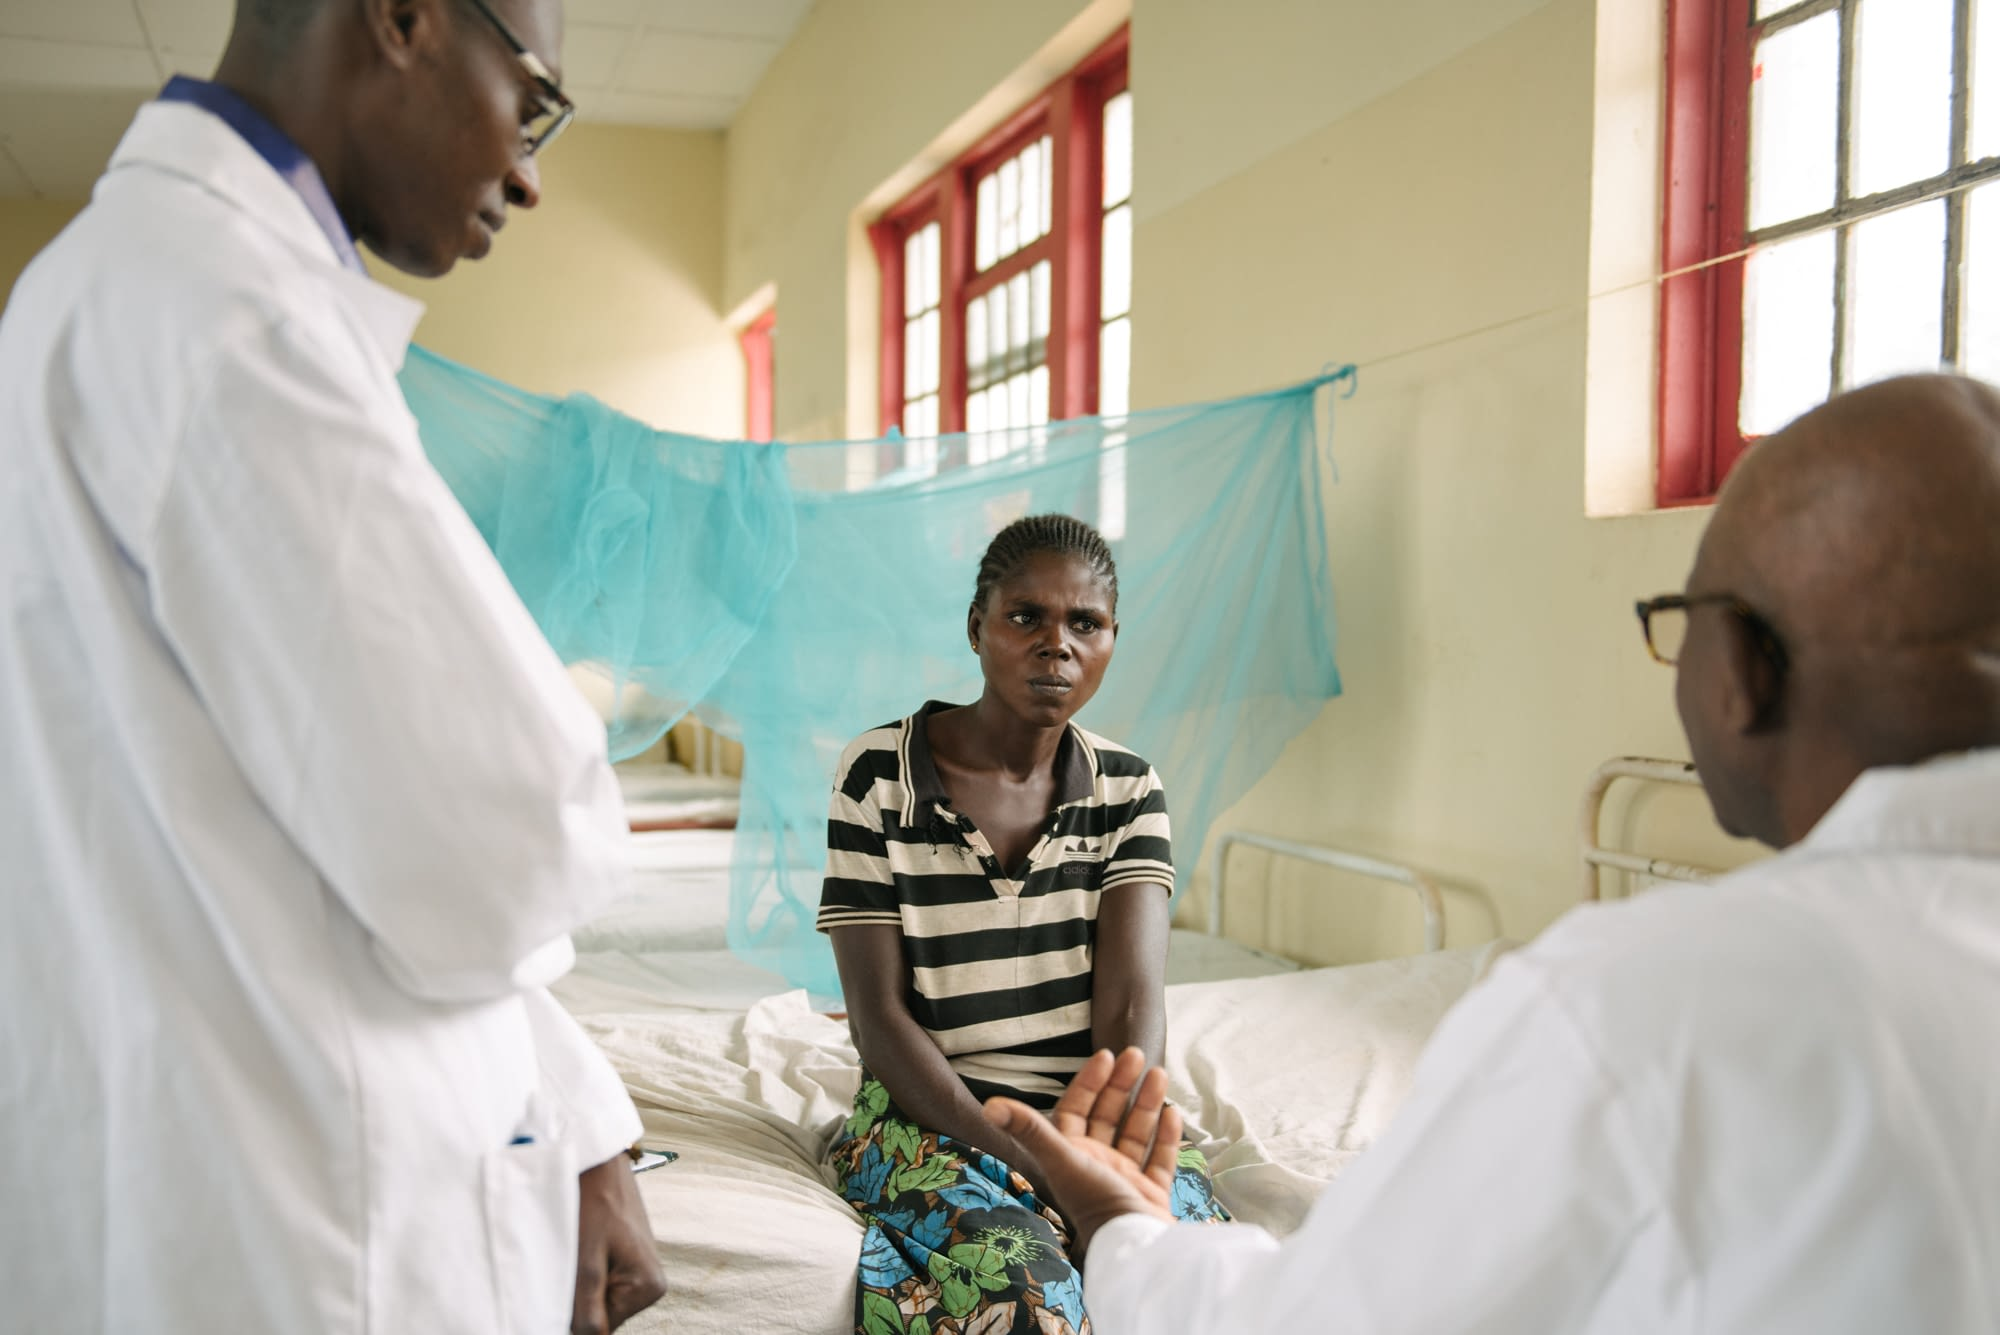 Doctors talking with patient in hospital